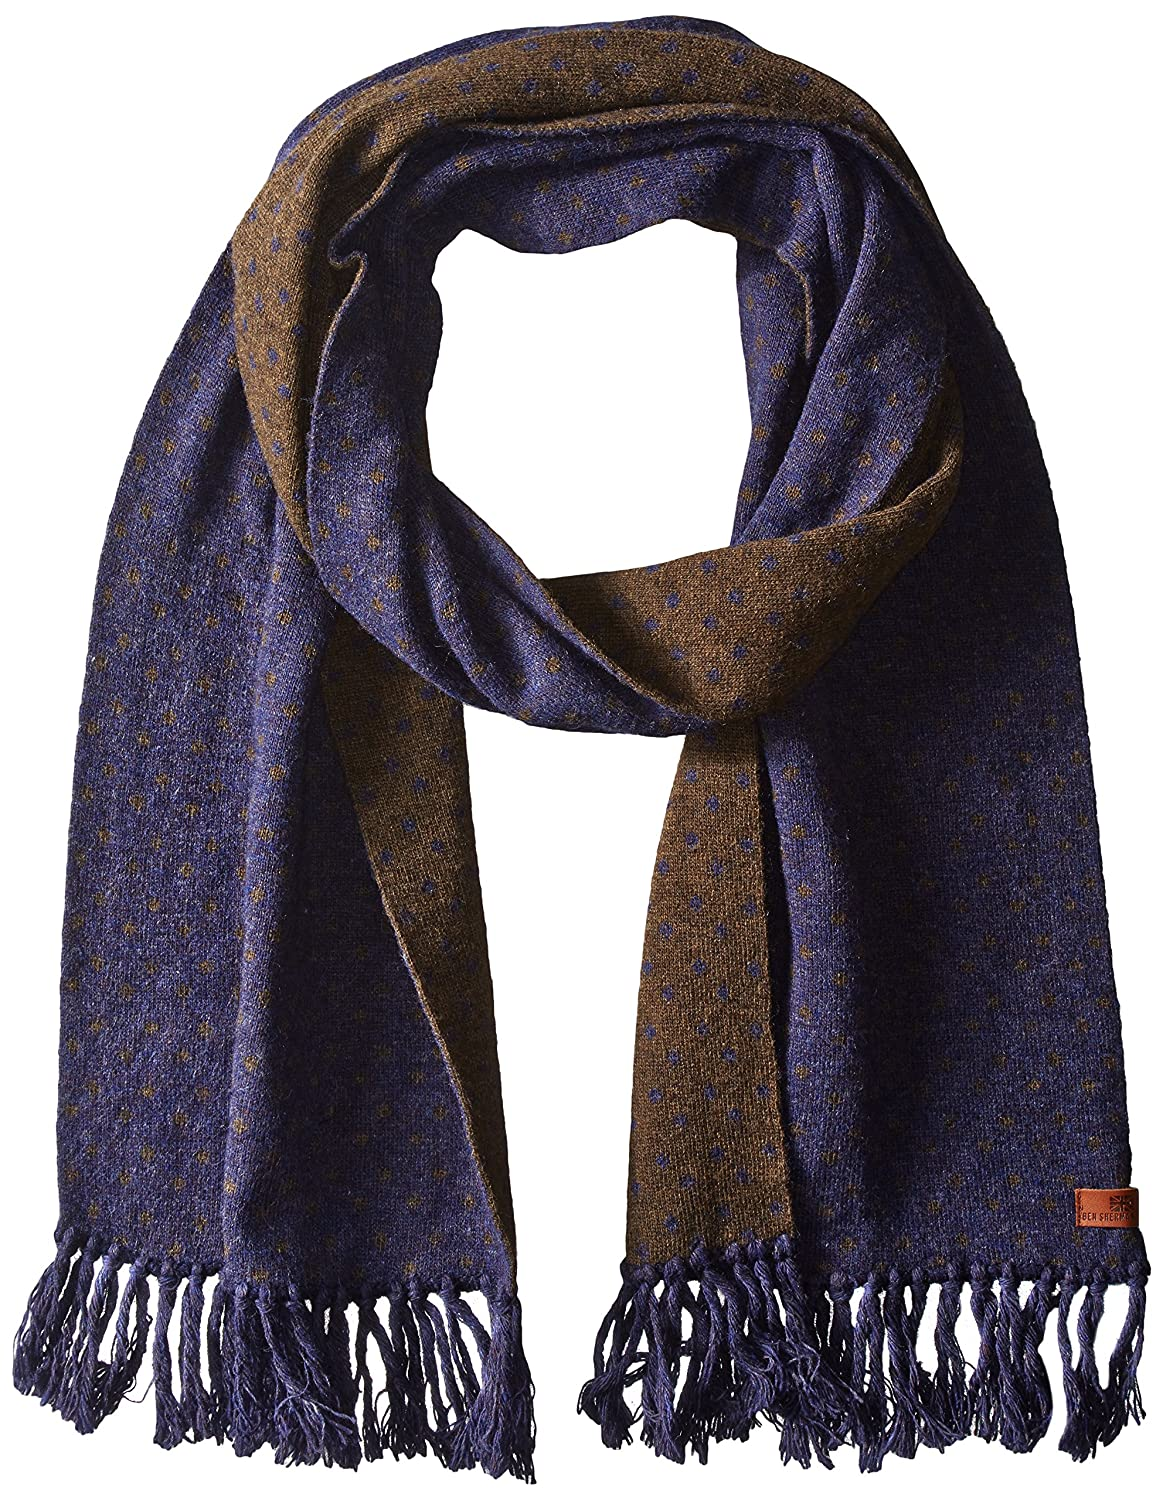 Ben Sherman Men's Micro-Dot Knit Scarf Navy Blazer One Size Ben Sherman Headwear BS4869